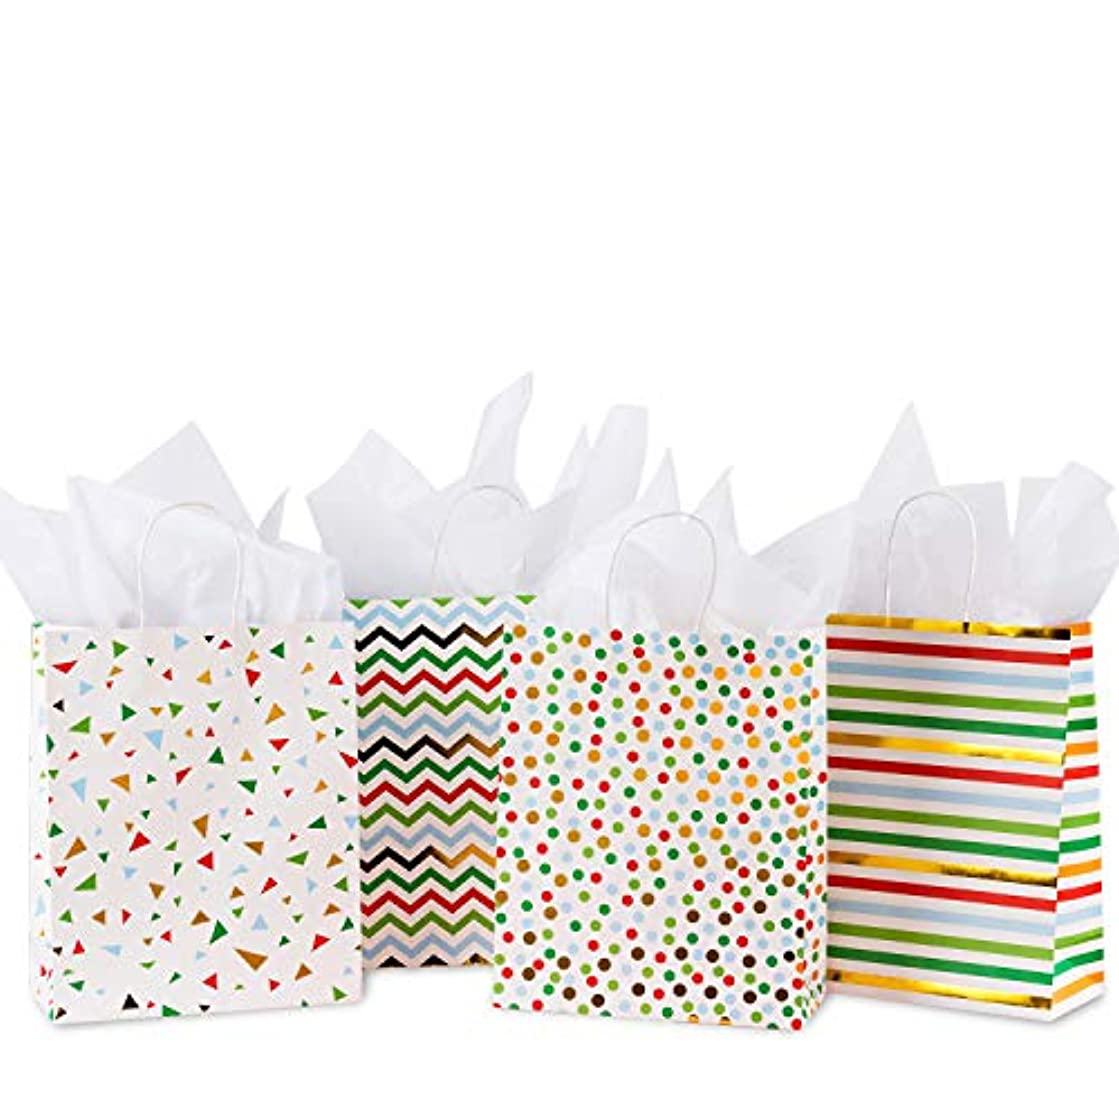 Loveinside Gift Bags with Tissue Paper - 4pcs Colorful Geometric with Gold Foil Design for Shopping,Parties,Wedding,Baby Shower,Craft - 10